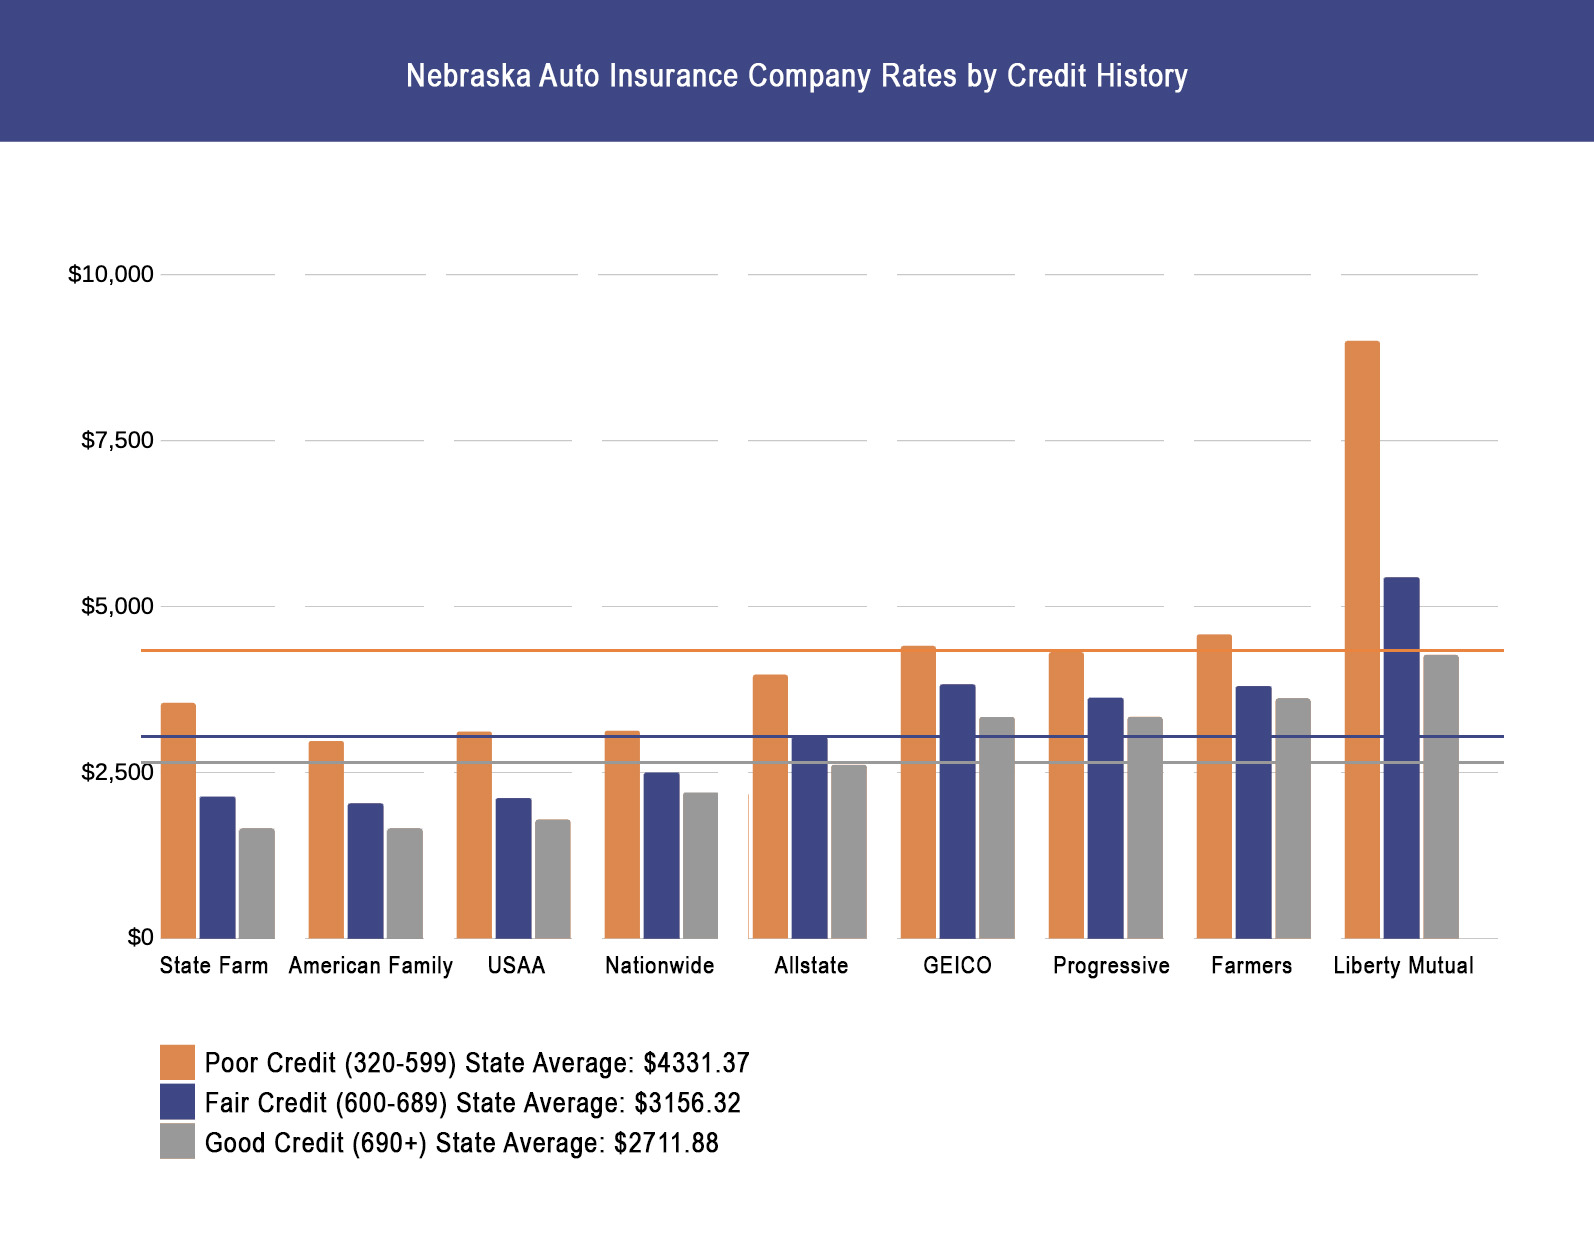 Nebraska Auto Insurance Company Rates by Credit History